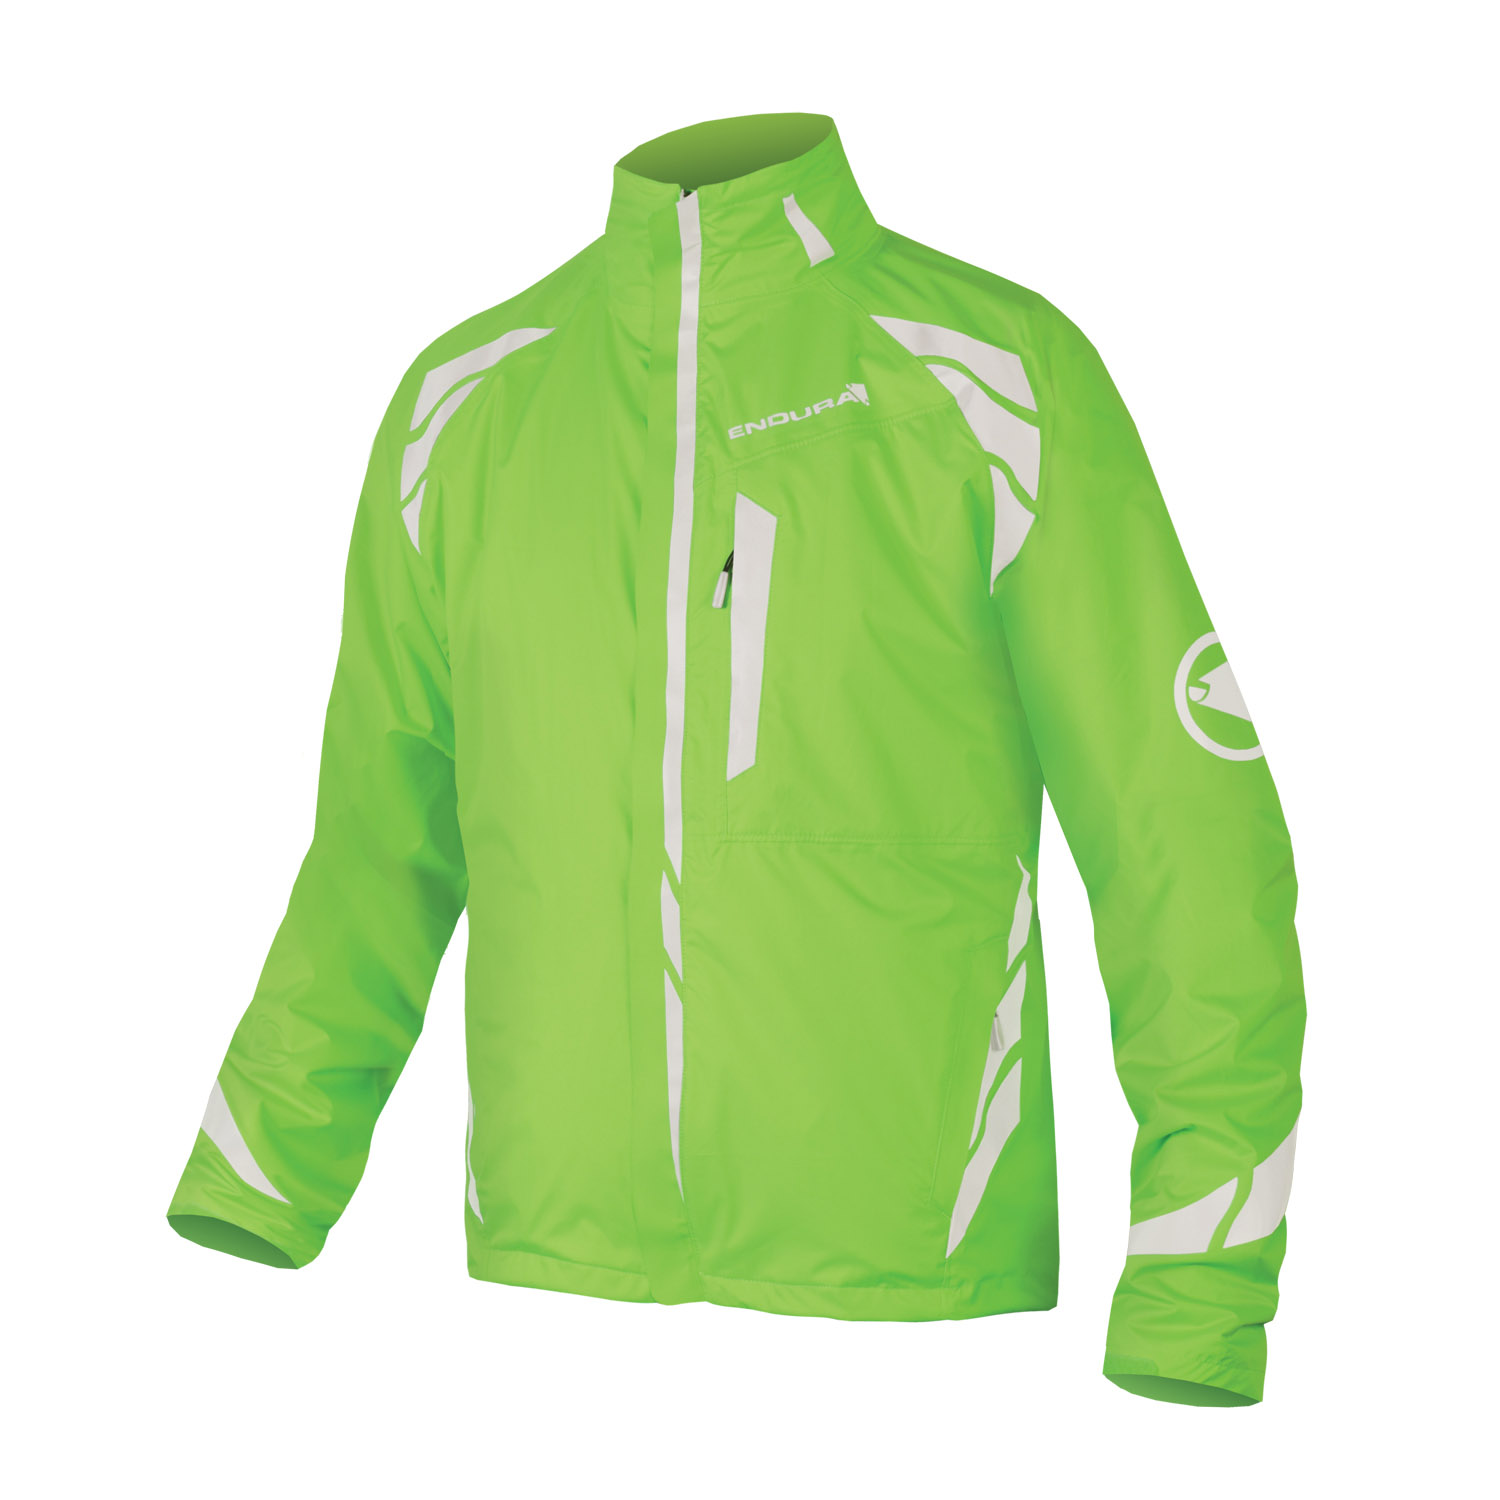 Luminite 4 in 1 Jacket Hi-Viz Green